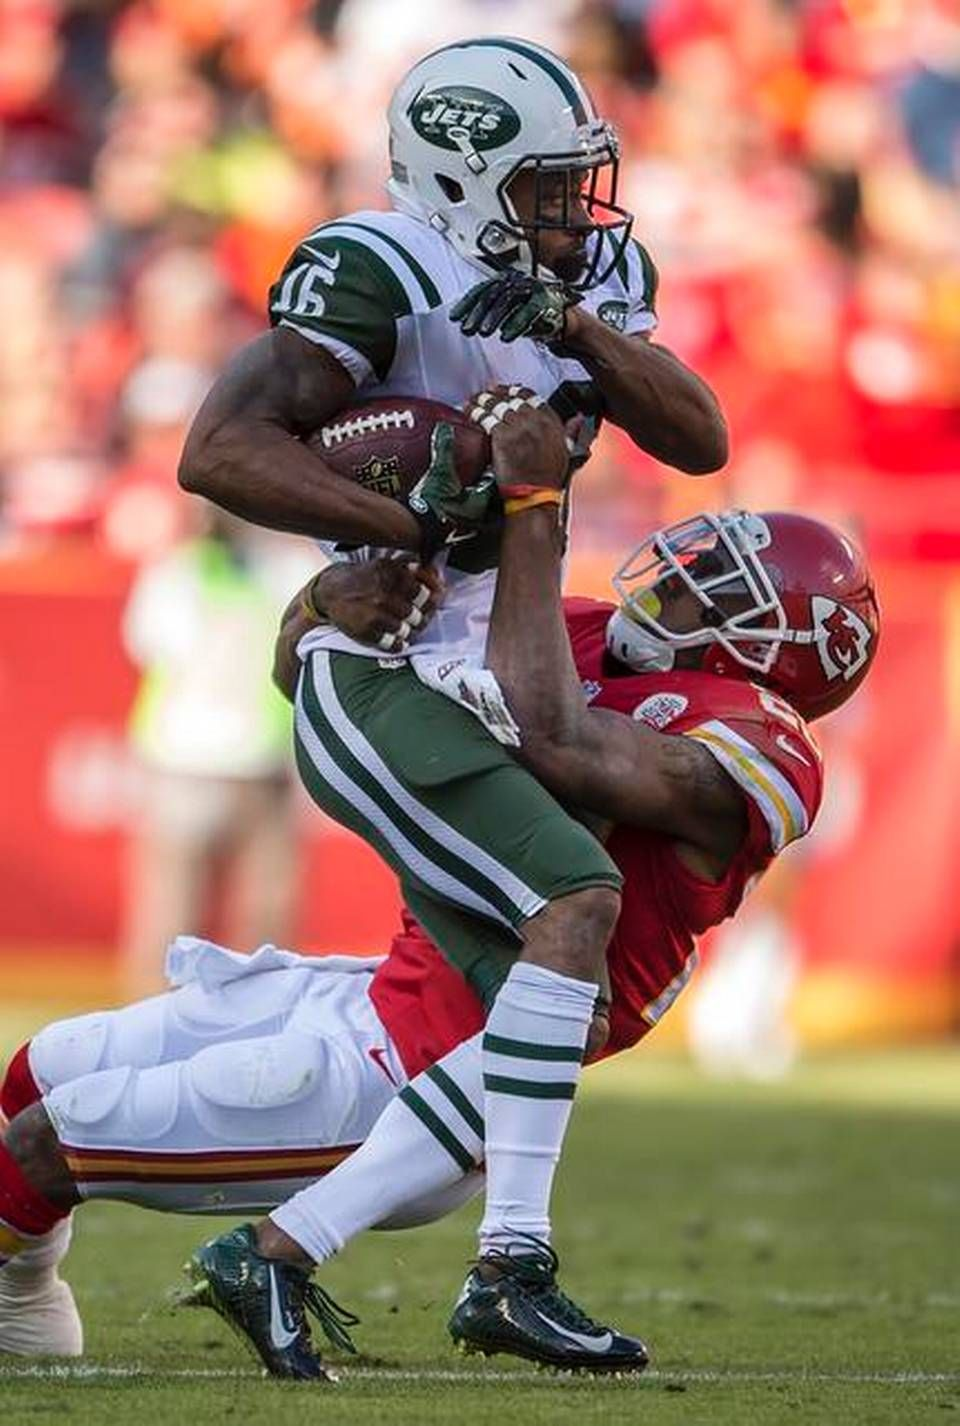 Photo gallery Chiefs 24, Jets 10 Chiefs football